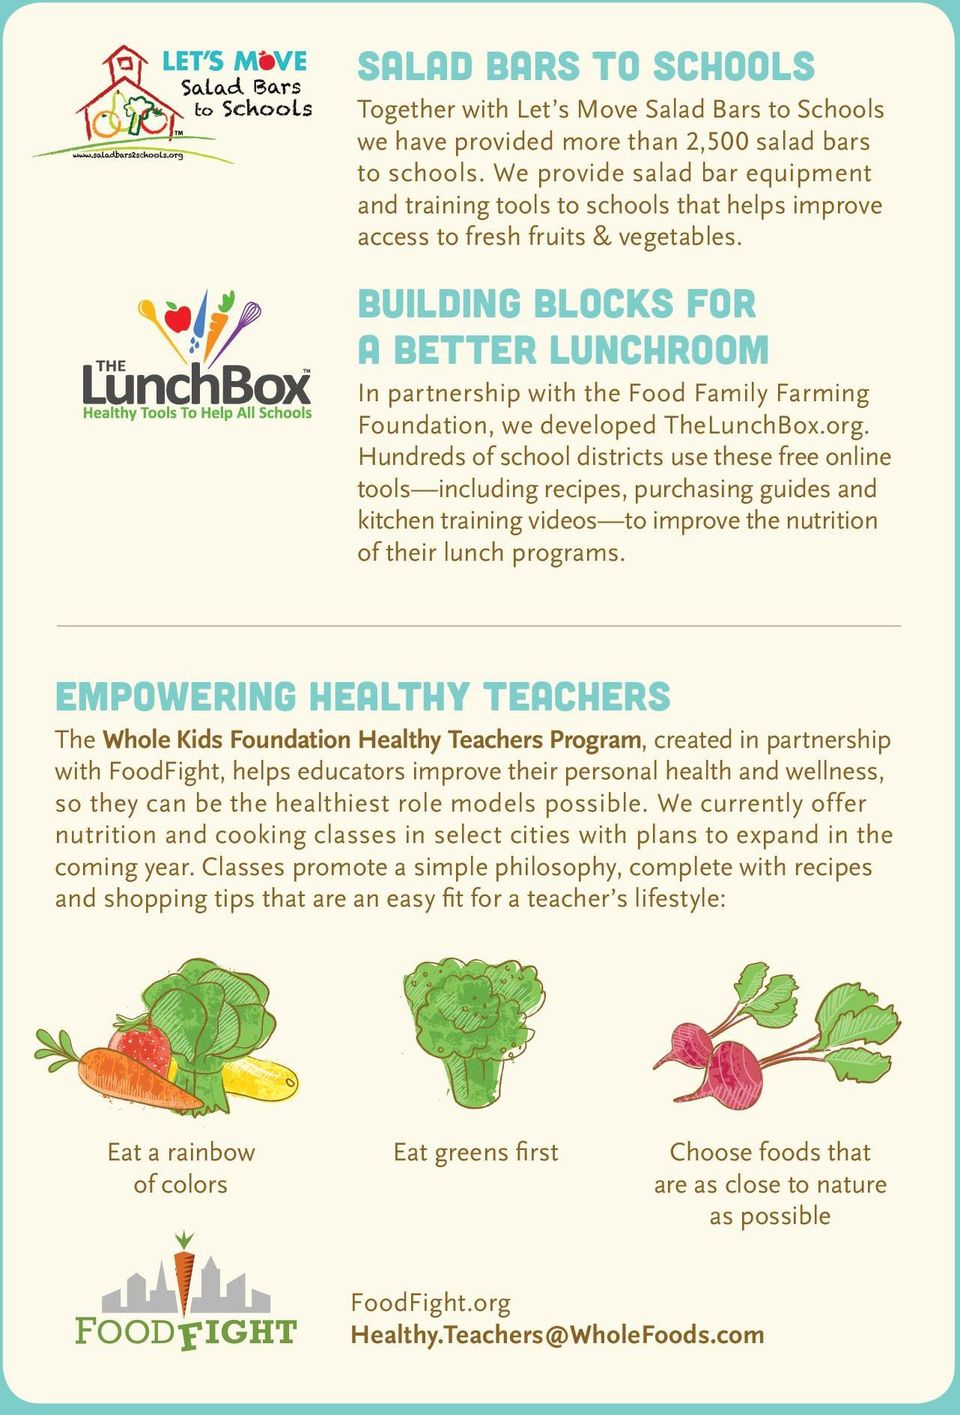 Building Blocks for A Better LunchRoom In partnership with the Food Family Farming Foundation, we developed TheLunchBox.org.